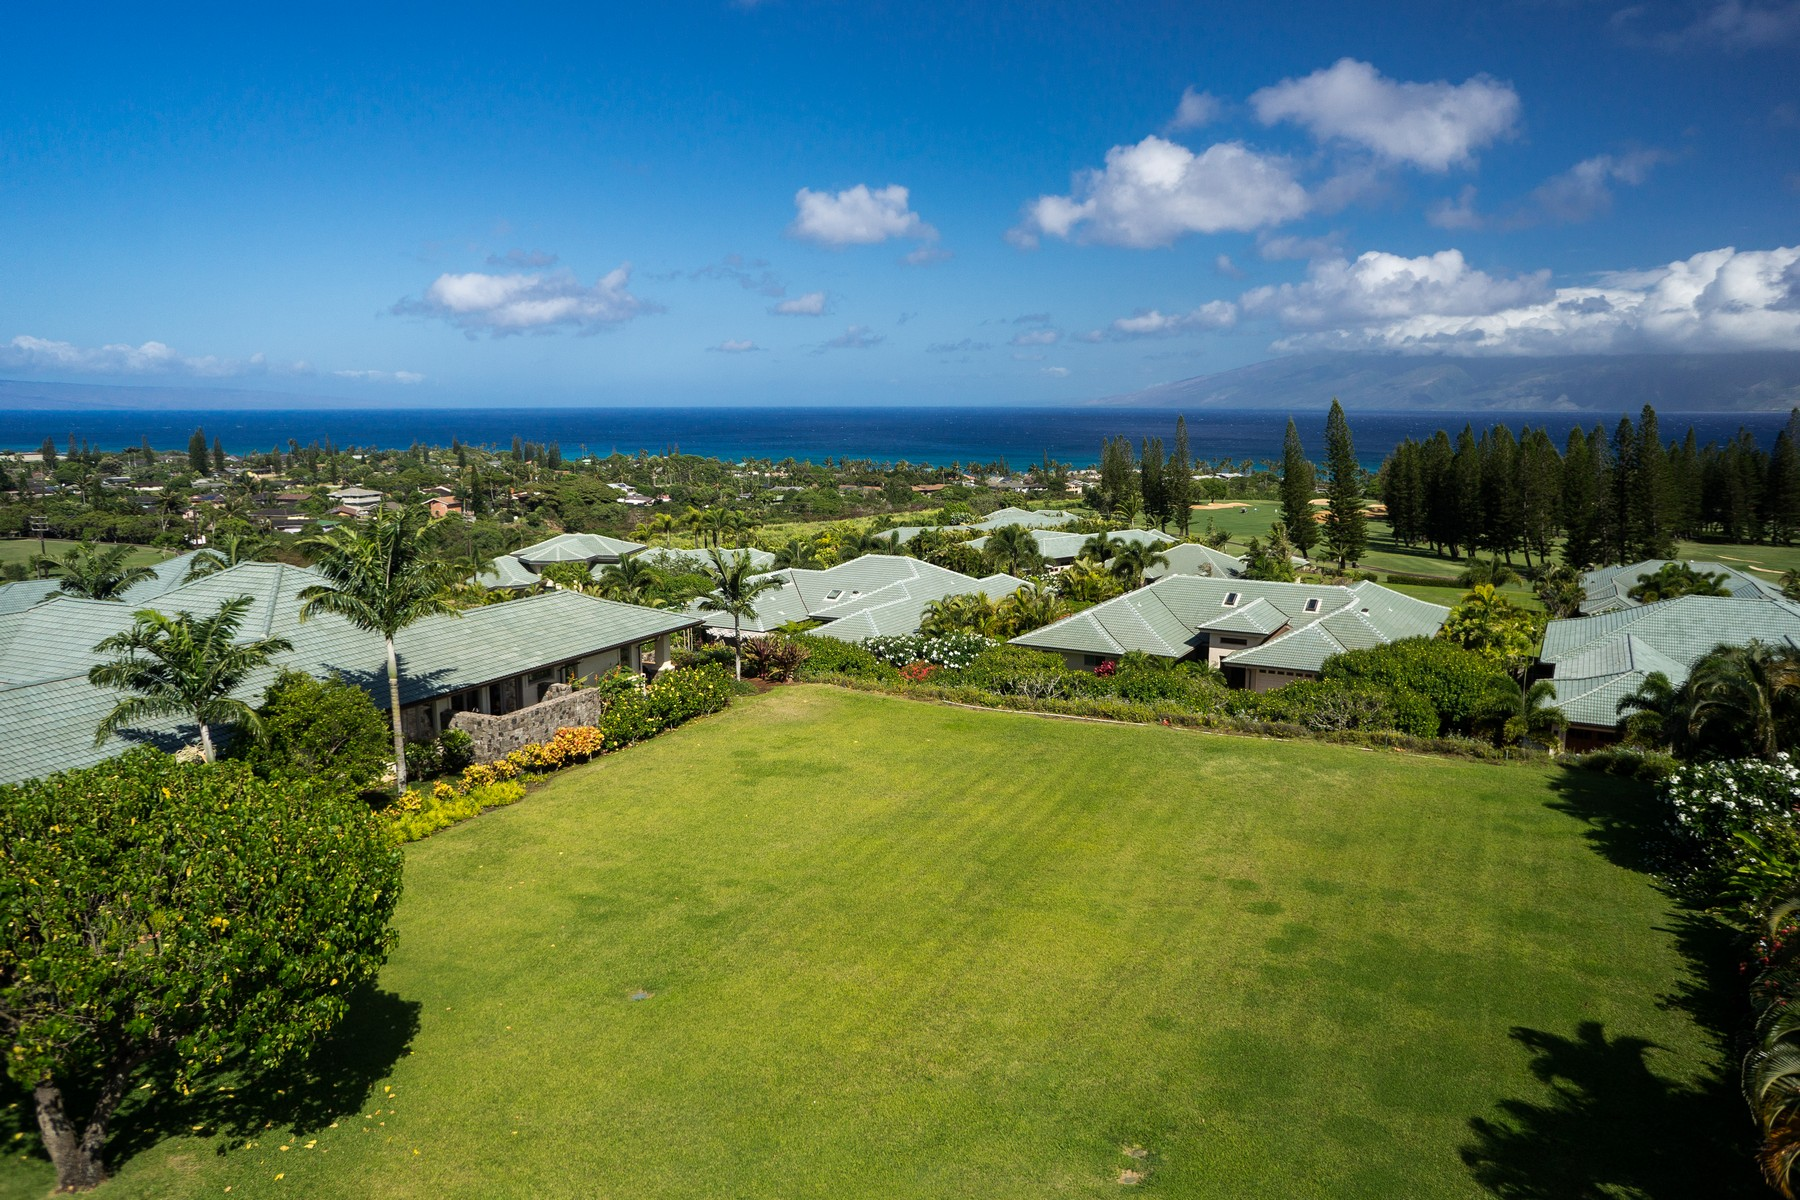 Land for Sale at Ocean And Island View Home Site In The Kapalua Resort 230 Crestview Road Kapalua, Hawaii, 96761 United States